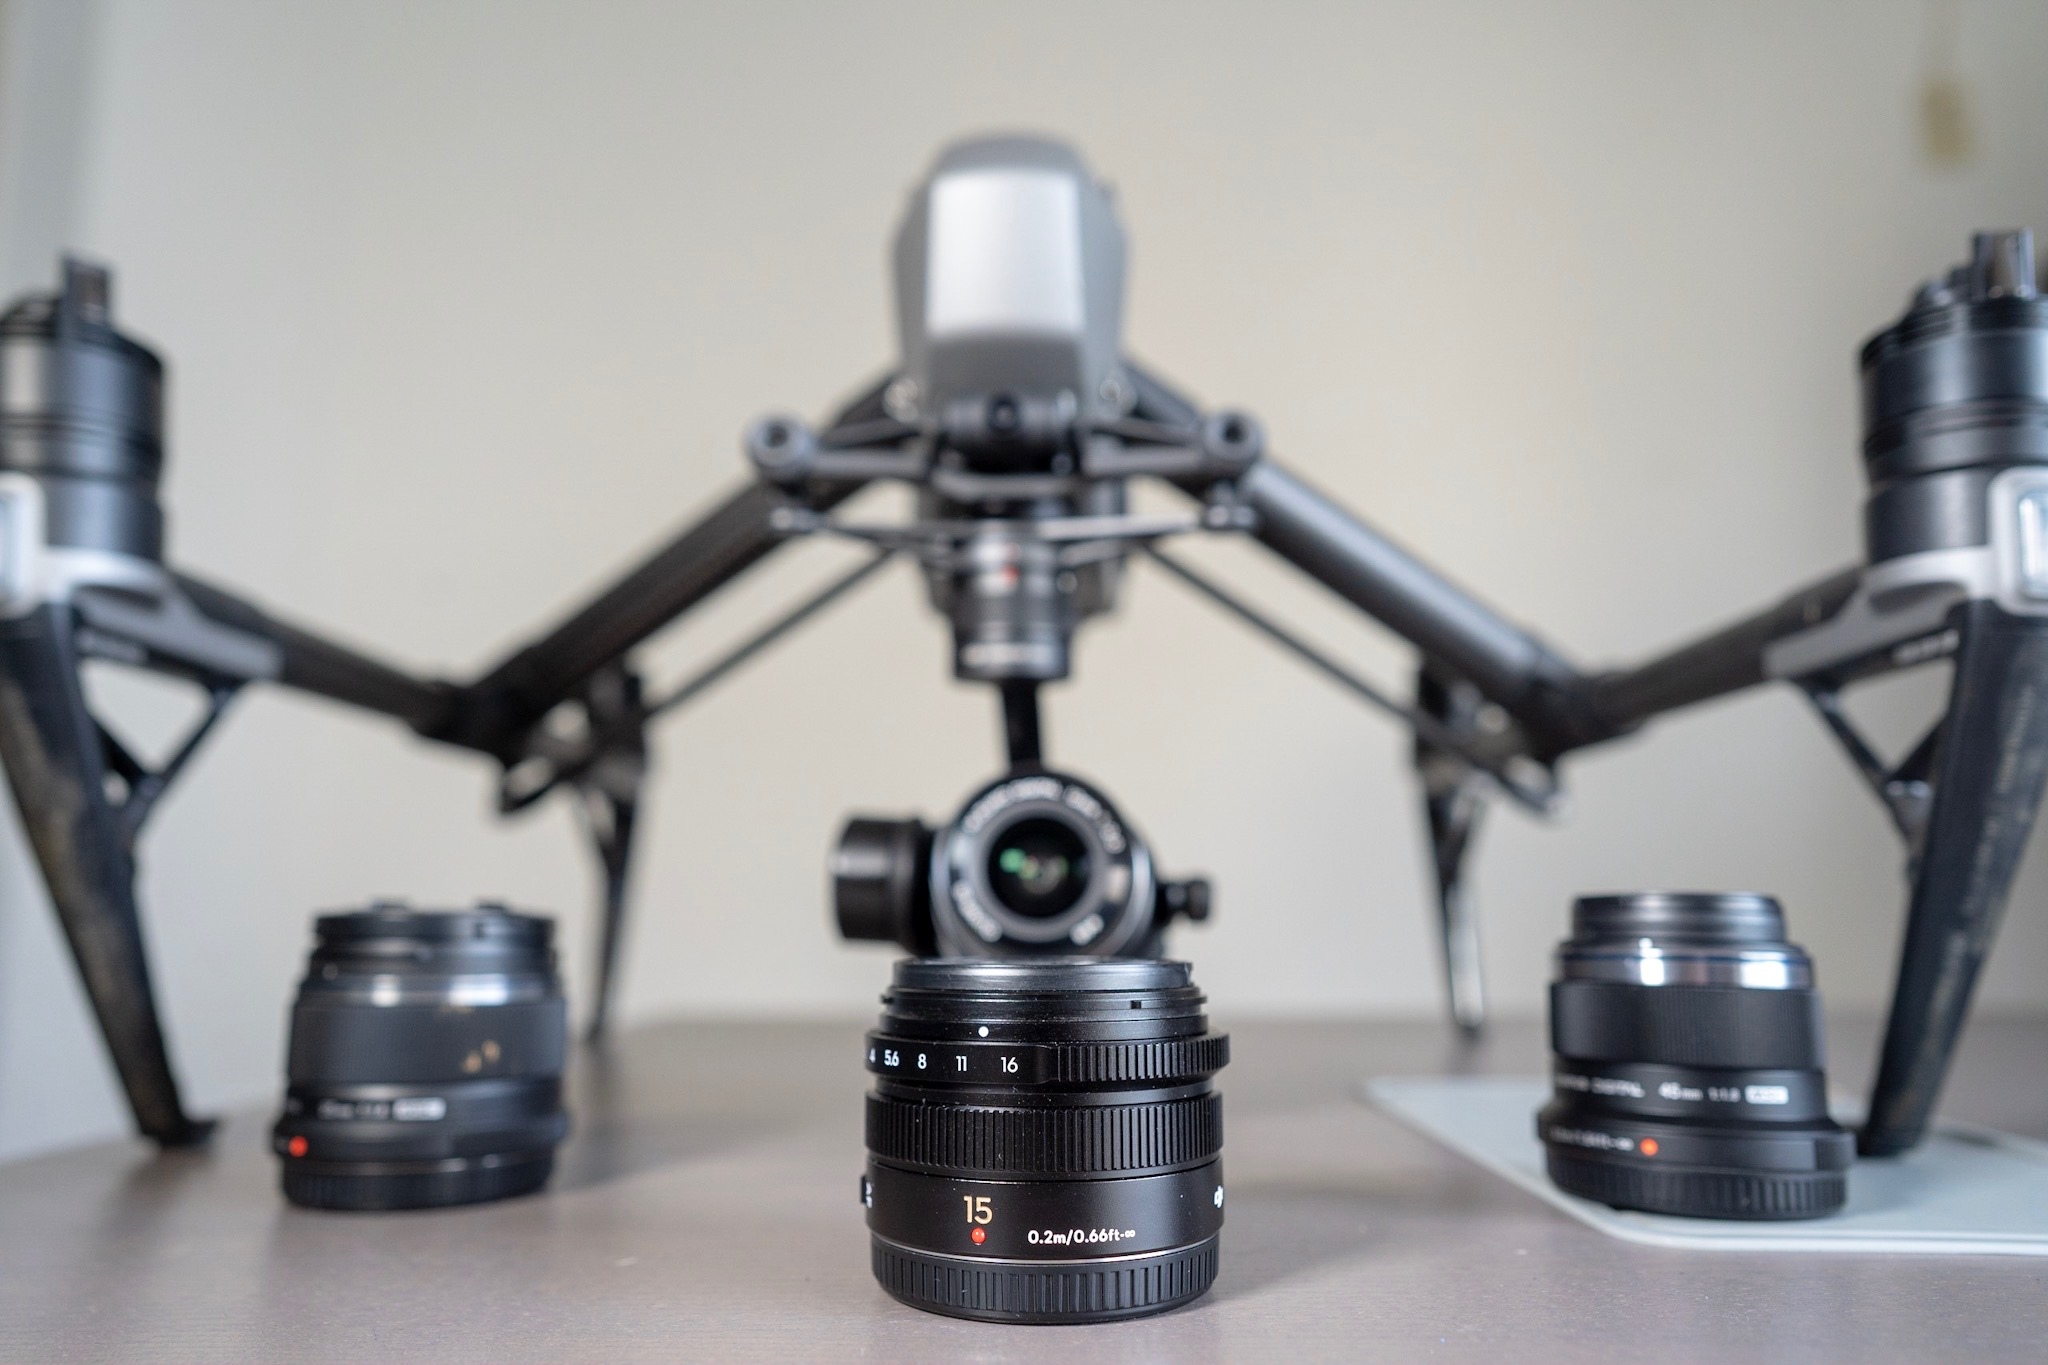 Inspire 2 with Apple ProRes license, 12mm, 15mm, 25mm, 45mm lenses